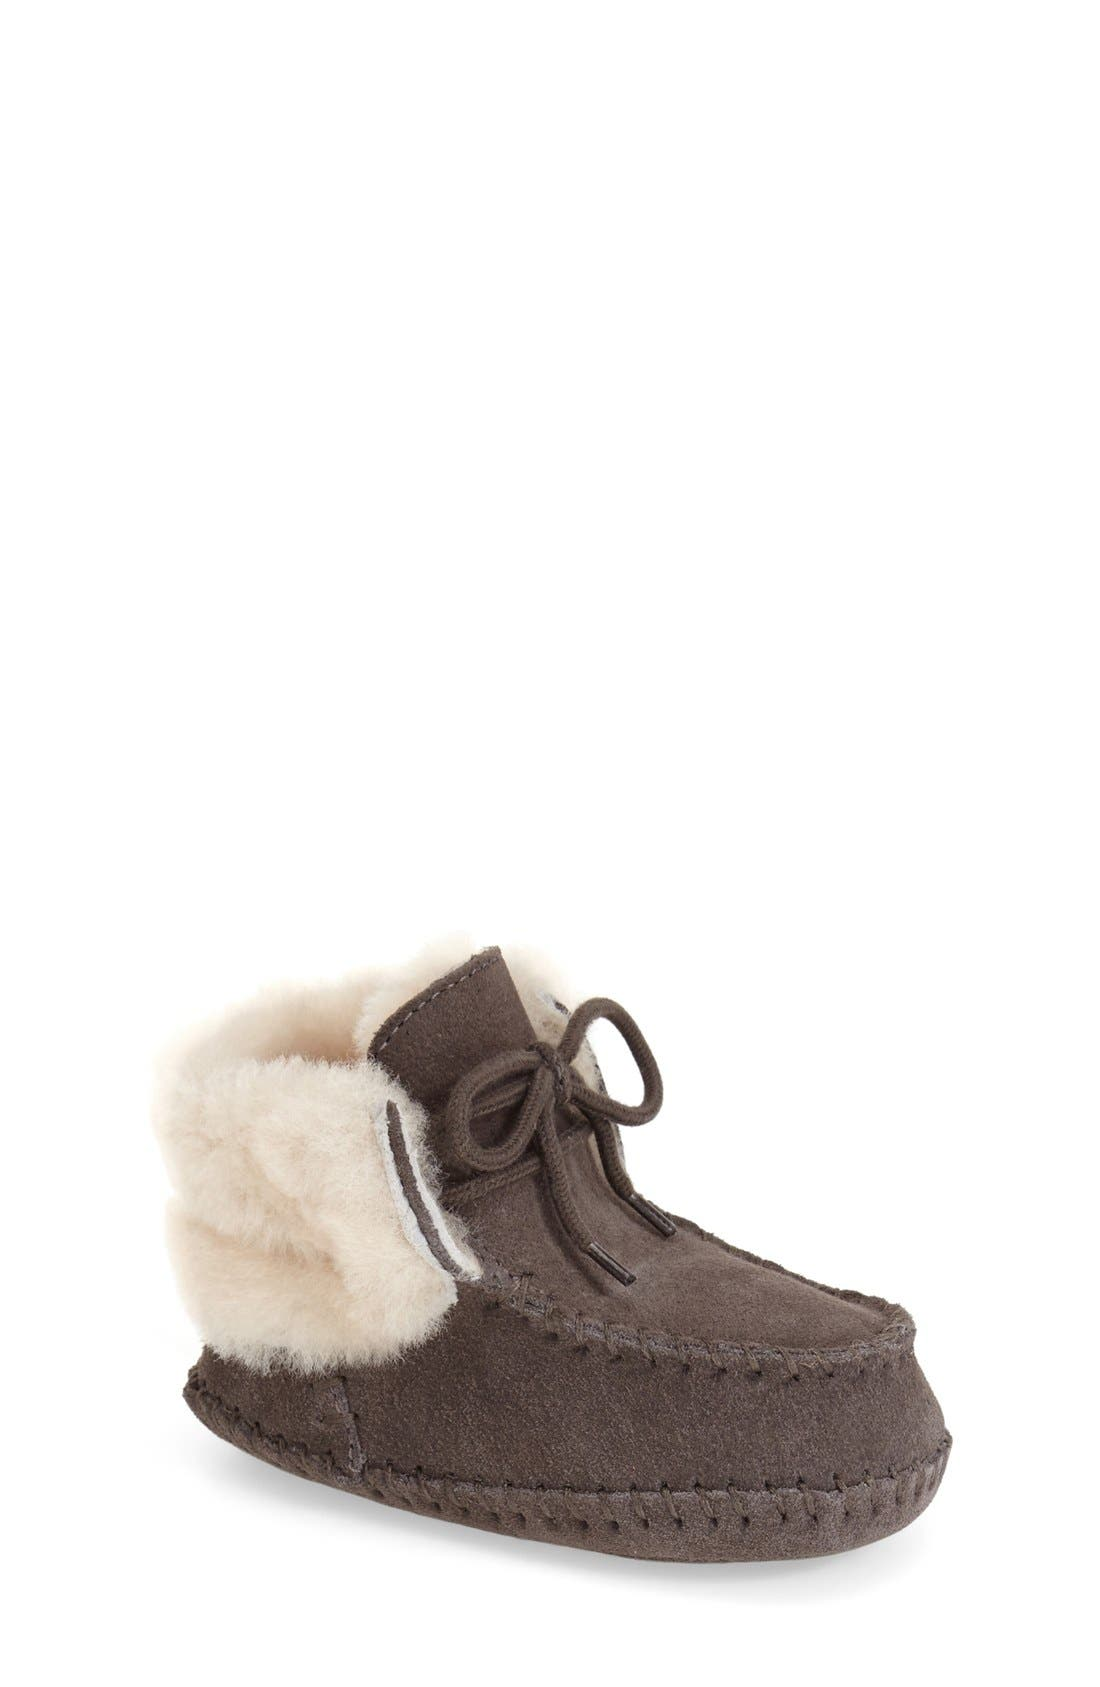 Main Image - UGG® 'Sparrow' Boot (Baby & Walker)